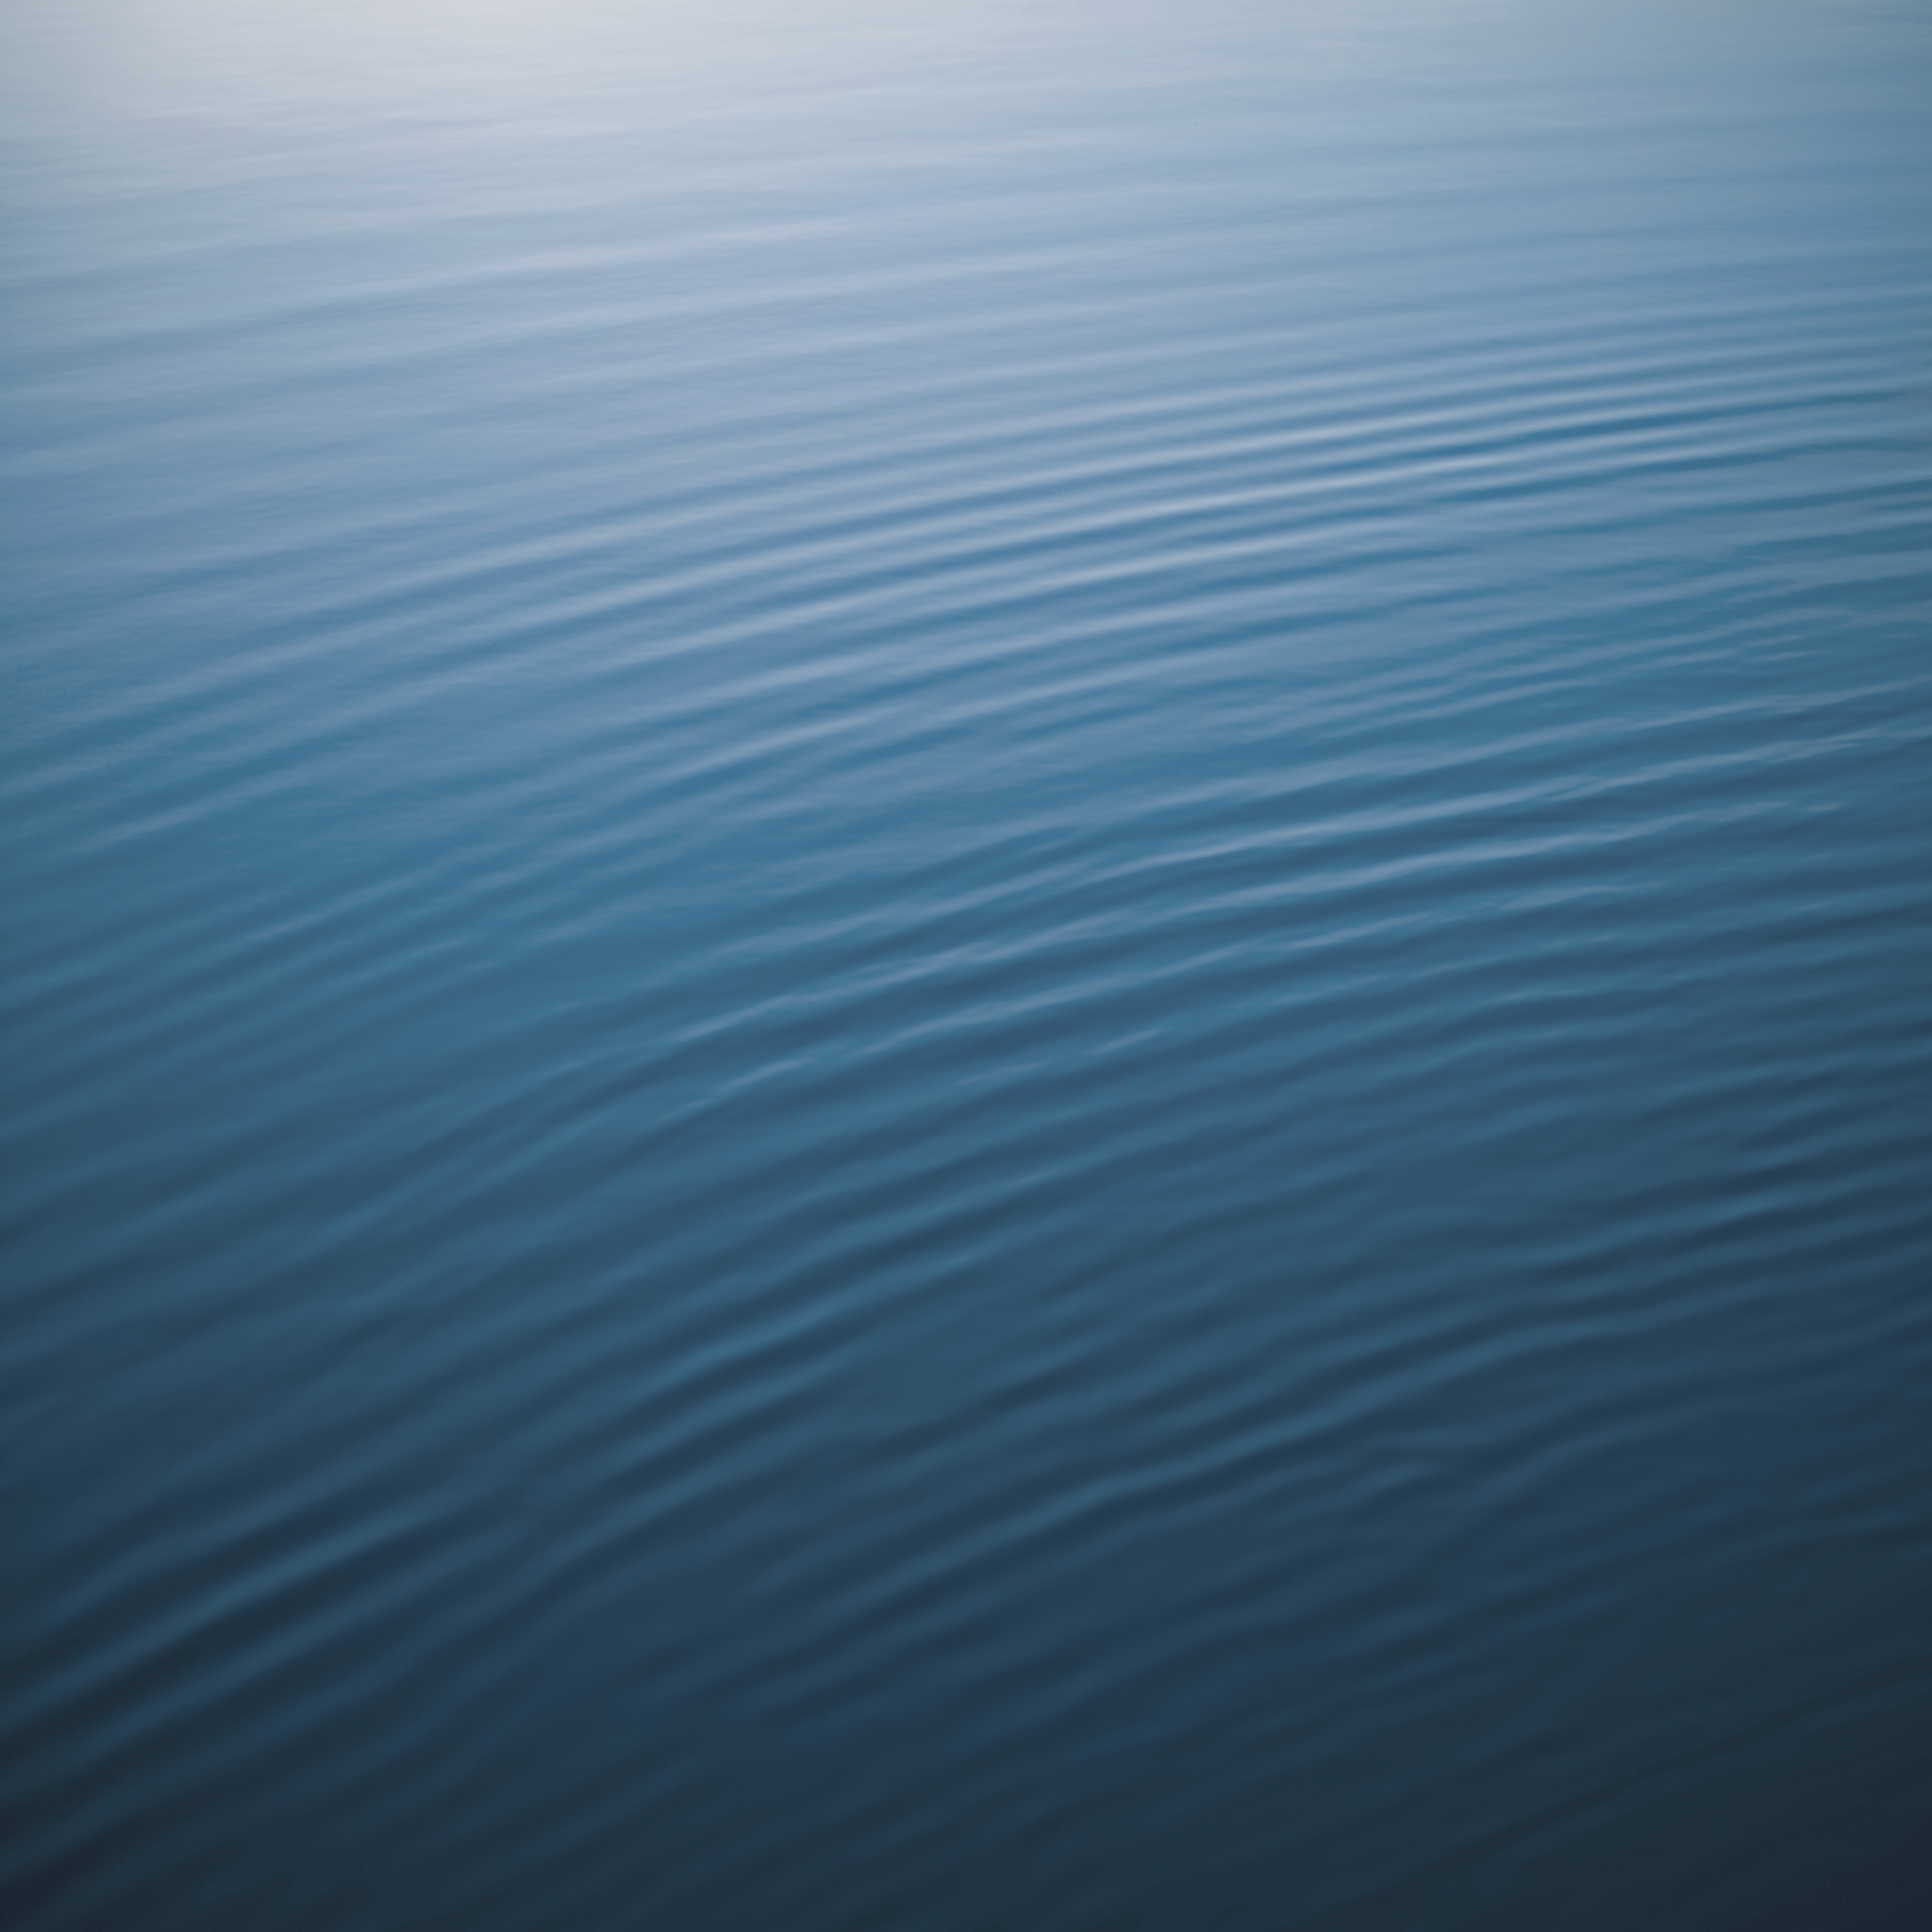 Ios 6 background image size - Ios 6 Original Wallpapers